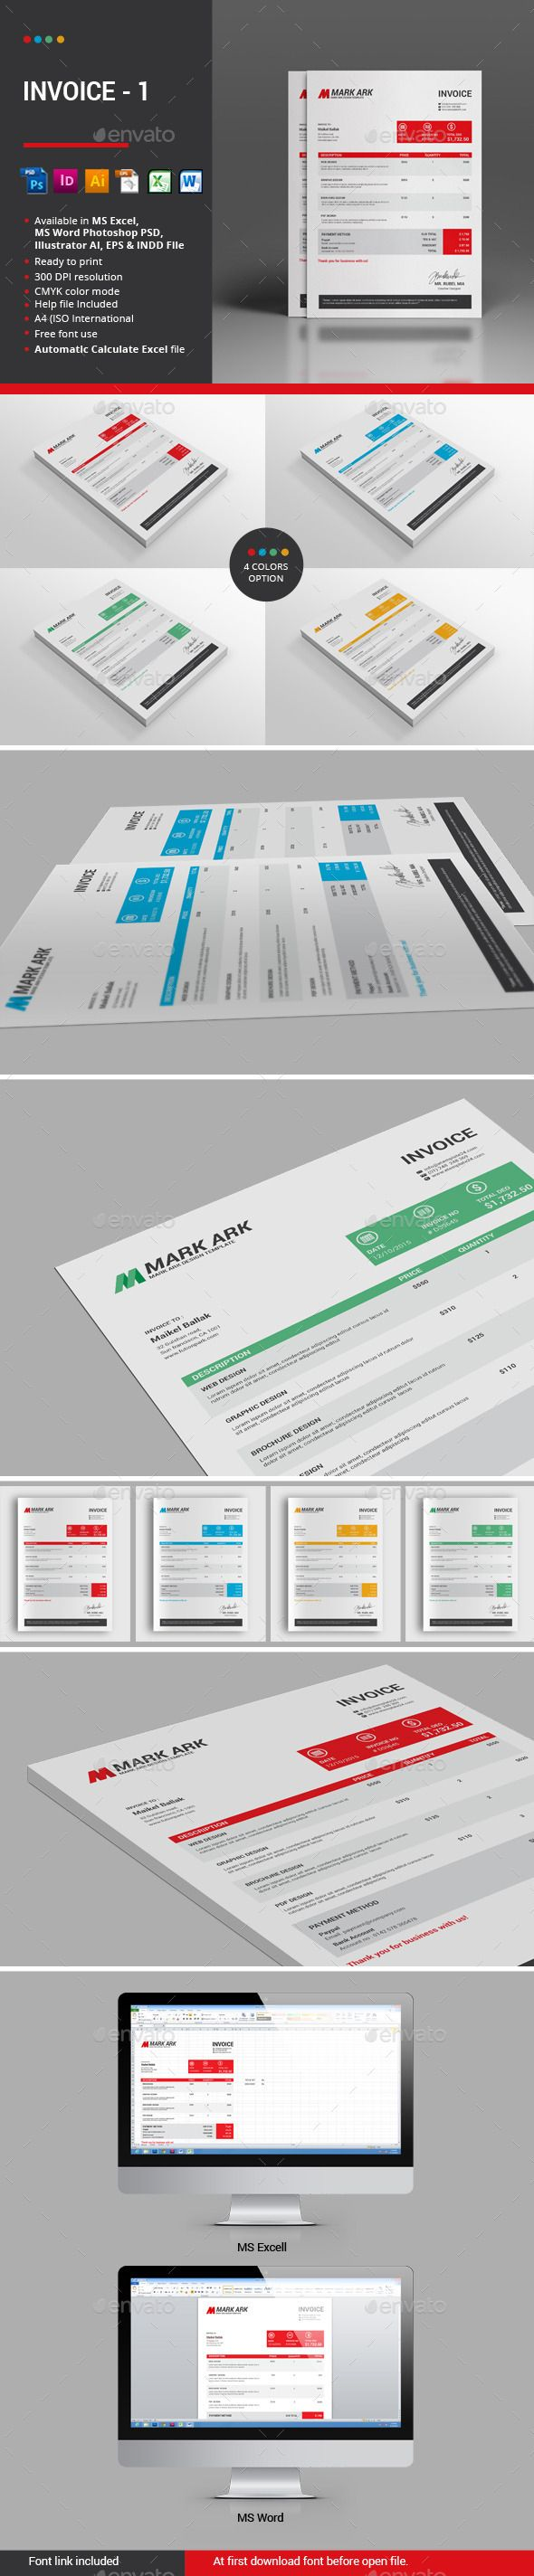 How To Make A Invoice In Excel 16 Best Excel Templates Images On Pinterest  Stationery Templates .